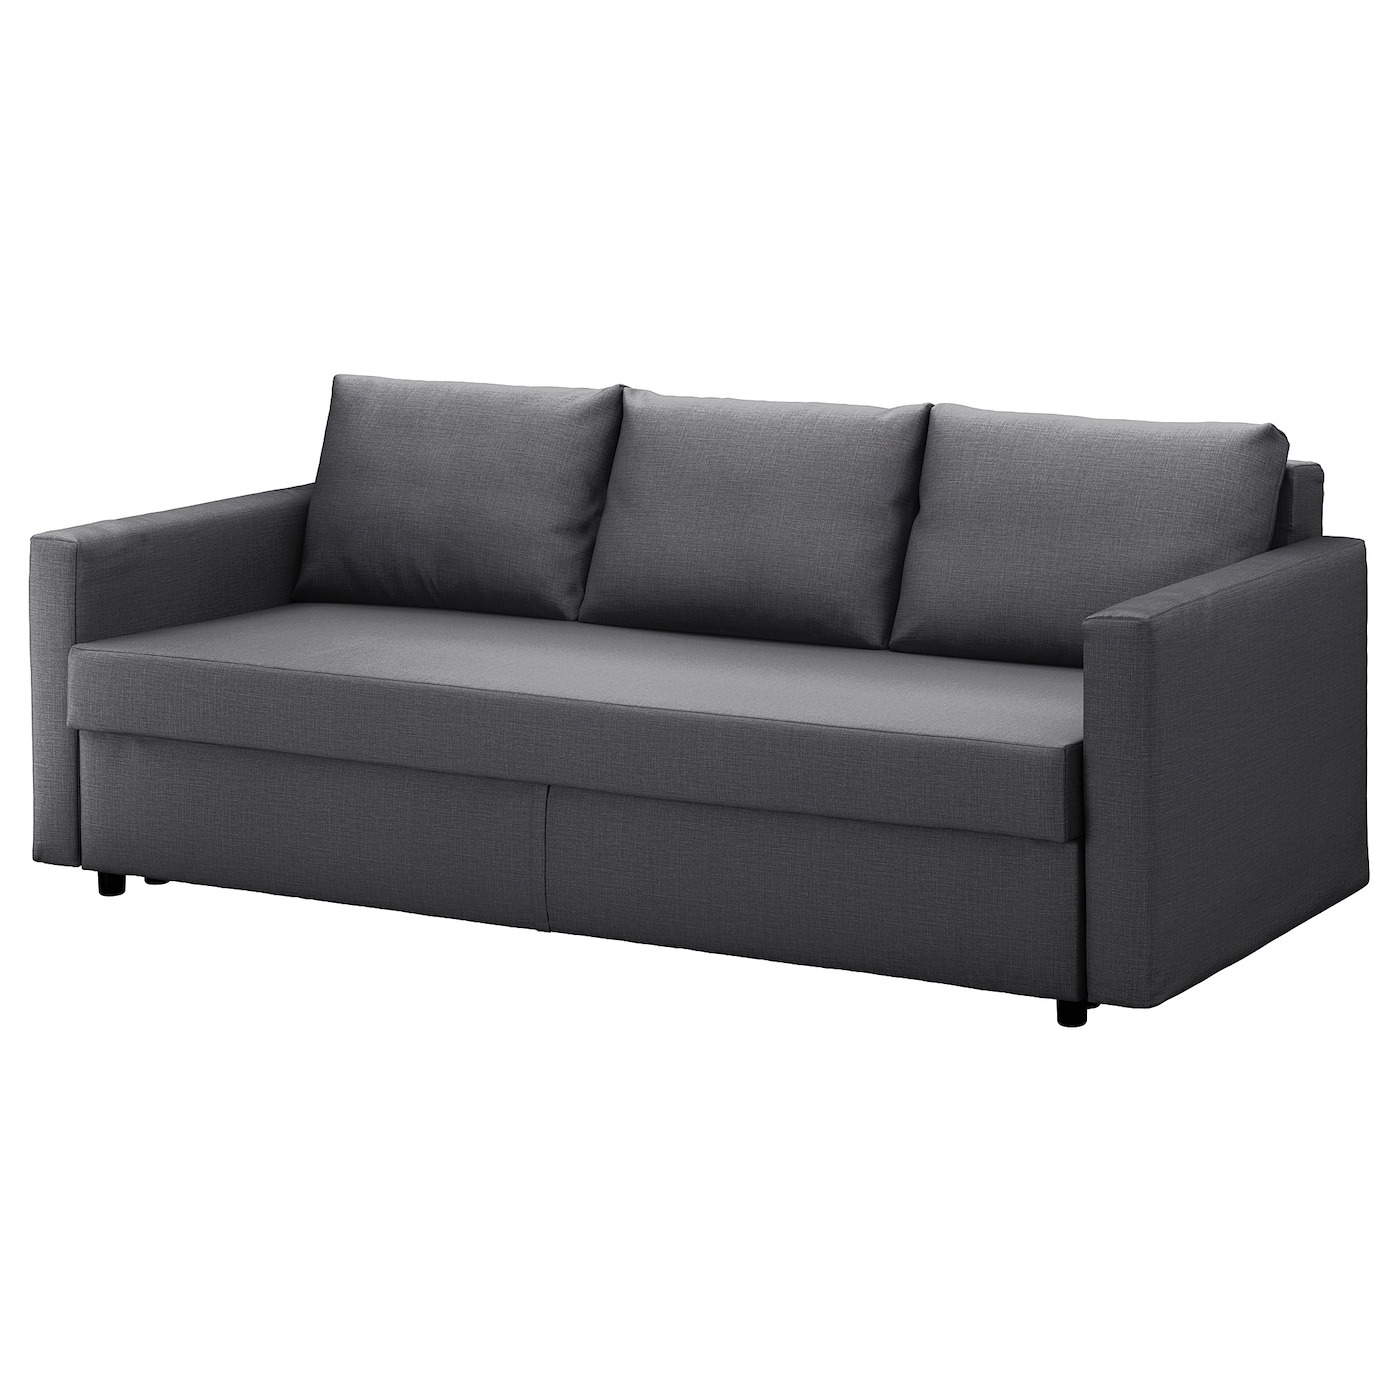 Ikea Friheten Three Seat Sofa Bed Readily Converts Into A